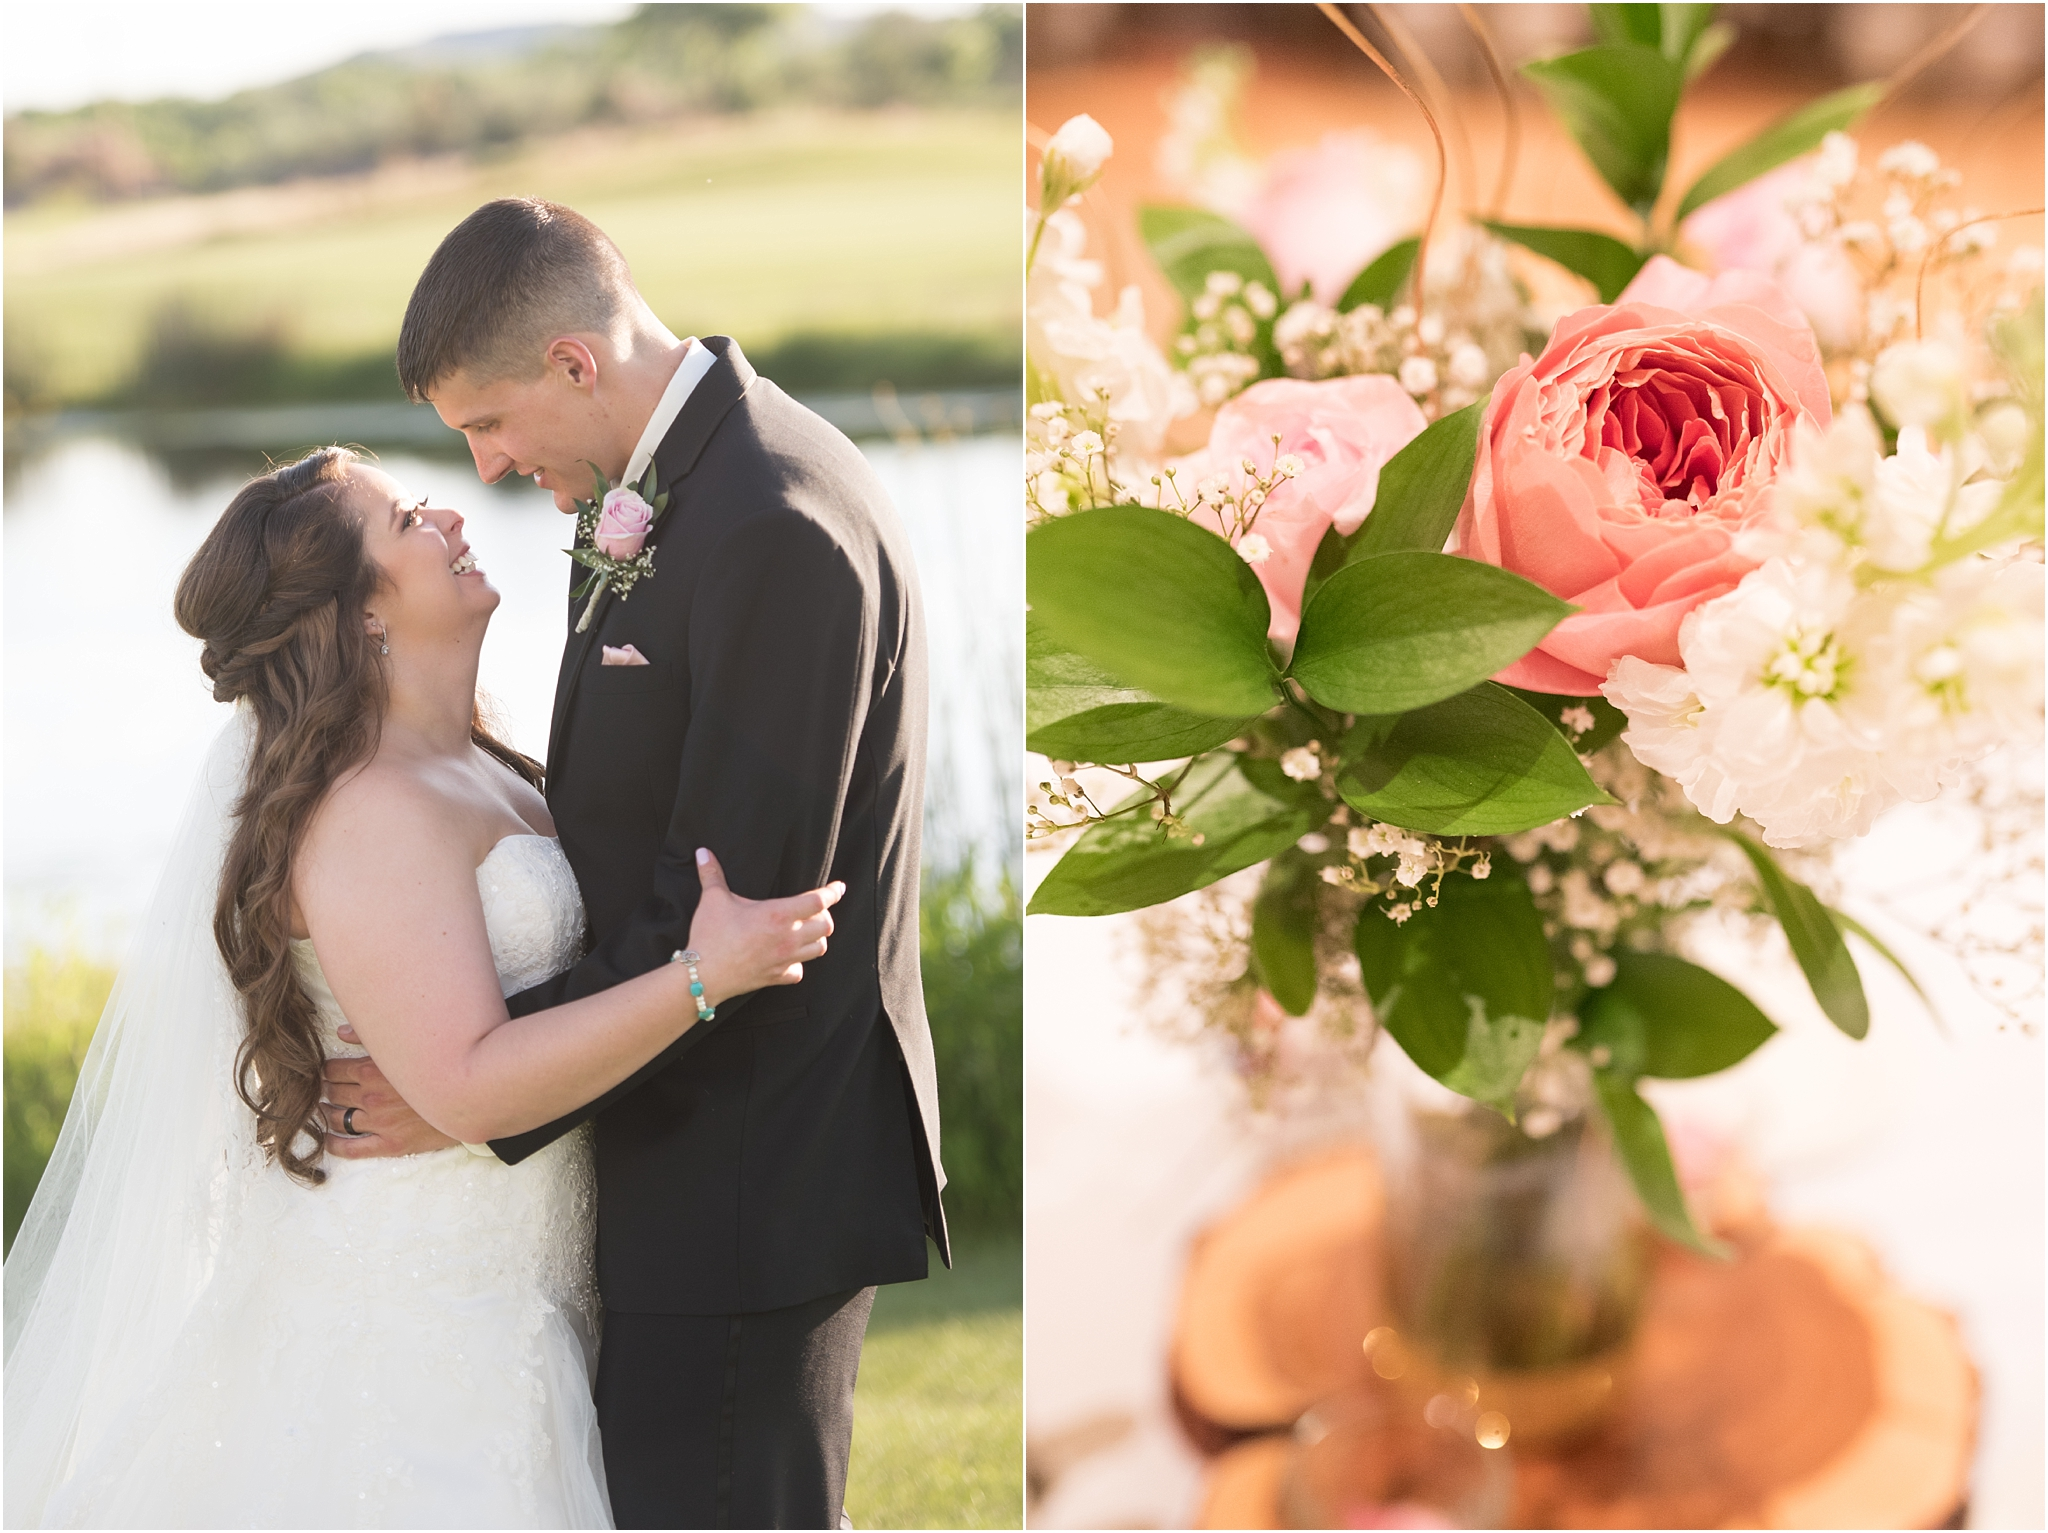 kayla kitts photography - new mexico wedding photographer - albuquerque botanic gardens - hotel albuquerque-casa de suenos_0205.jpg